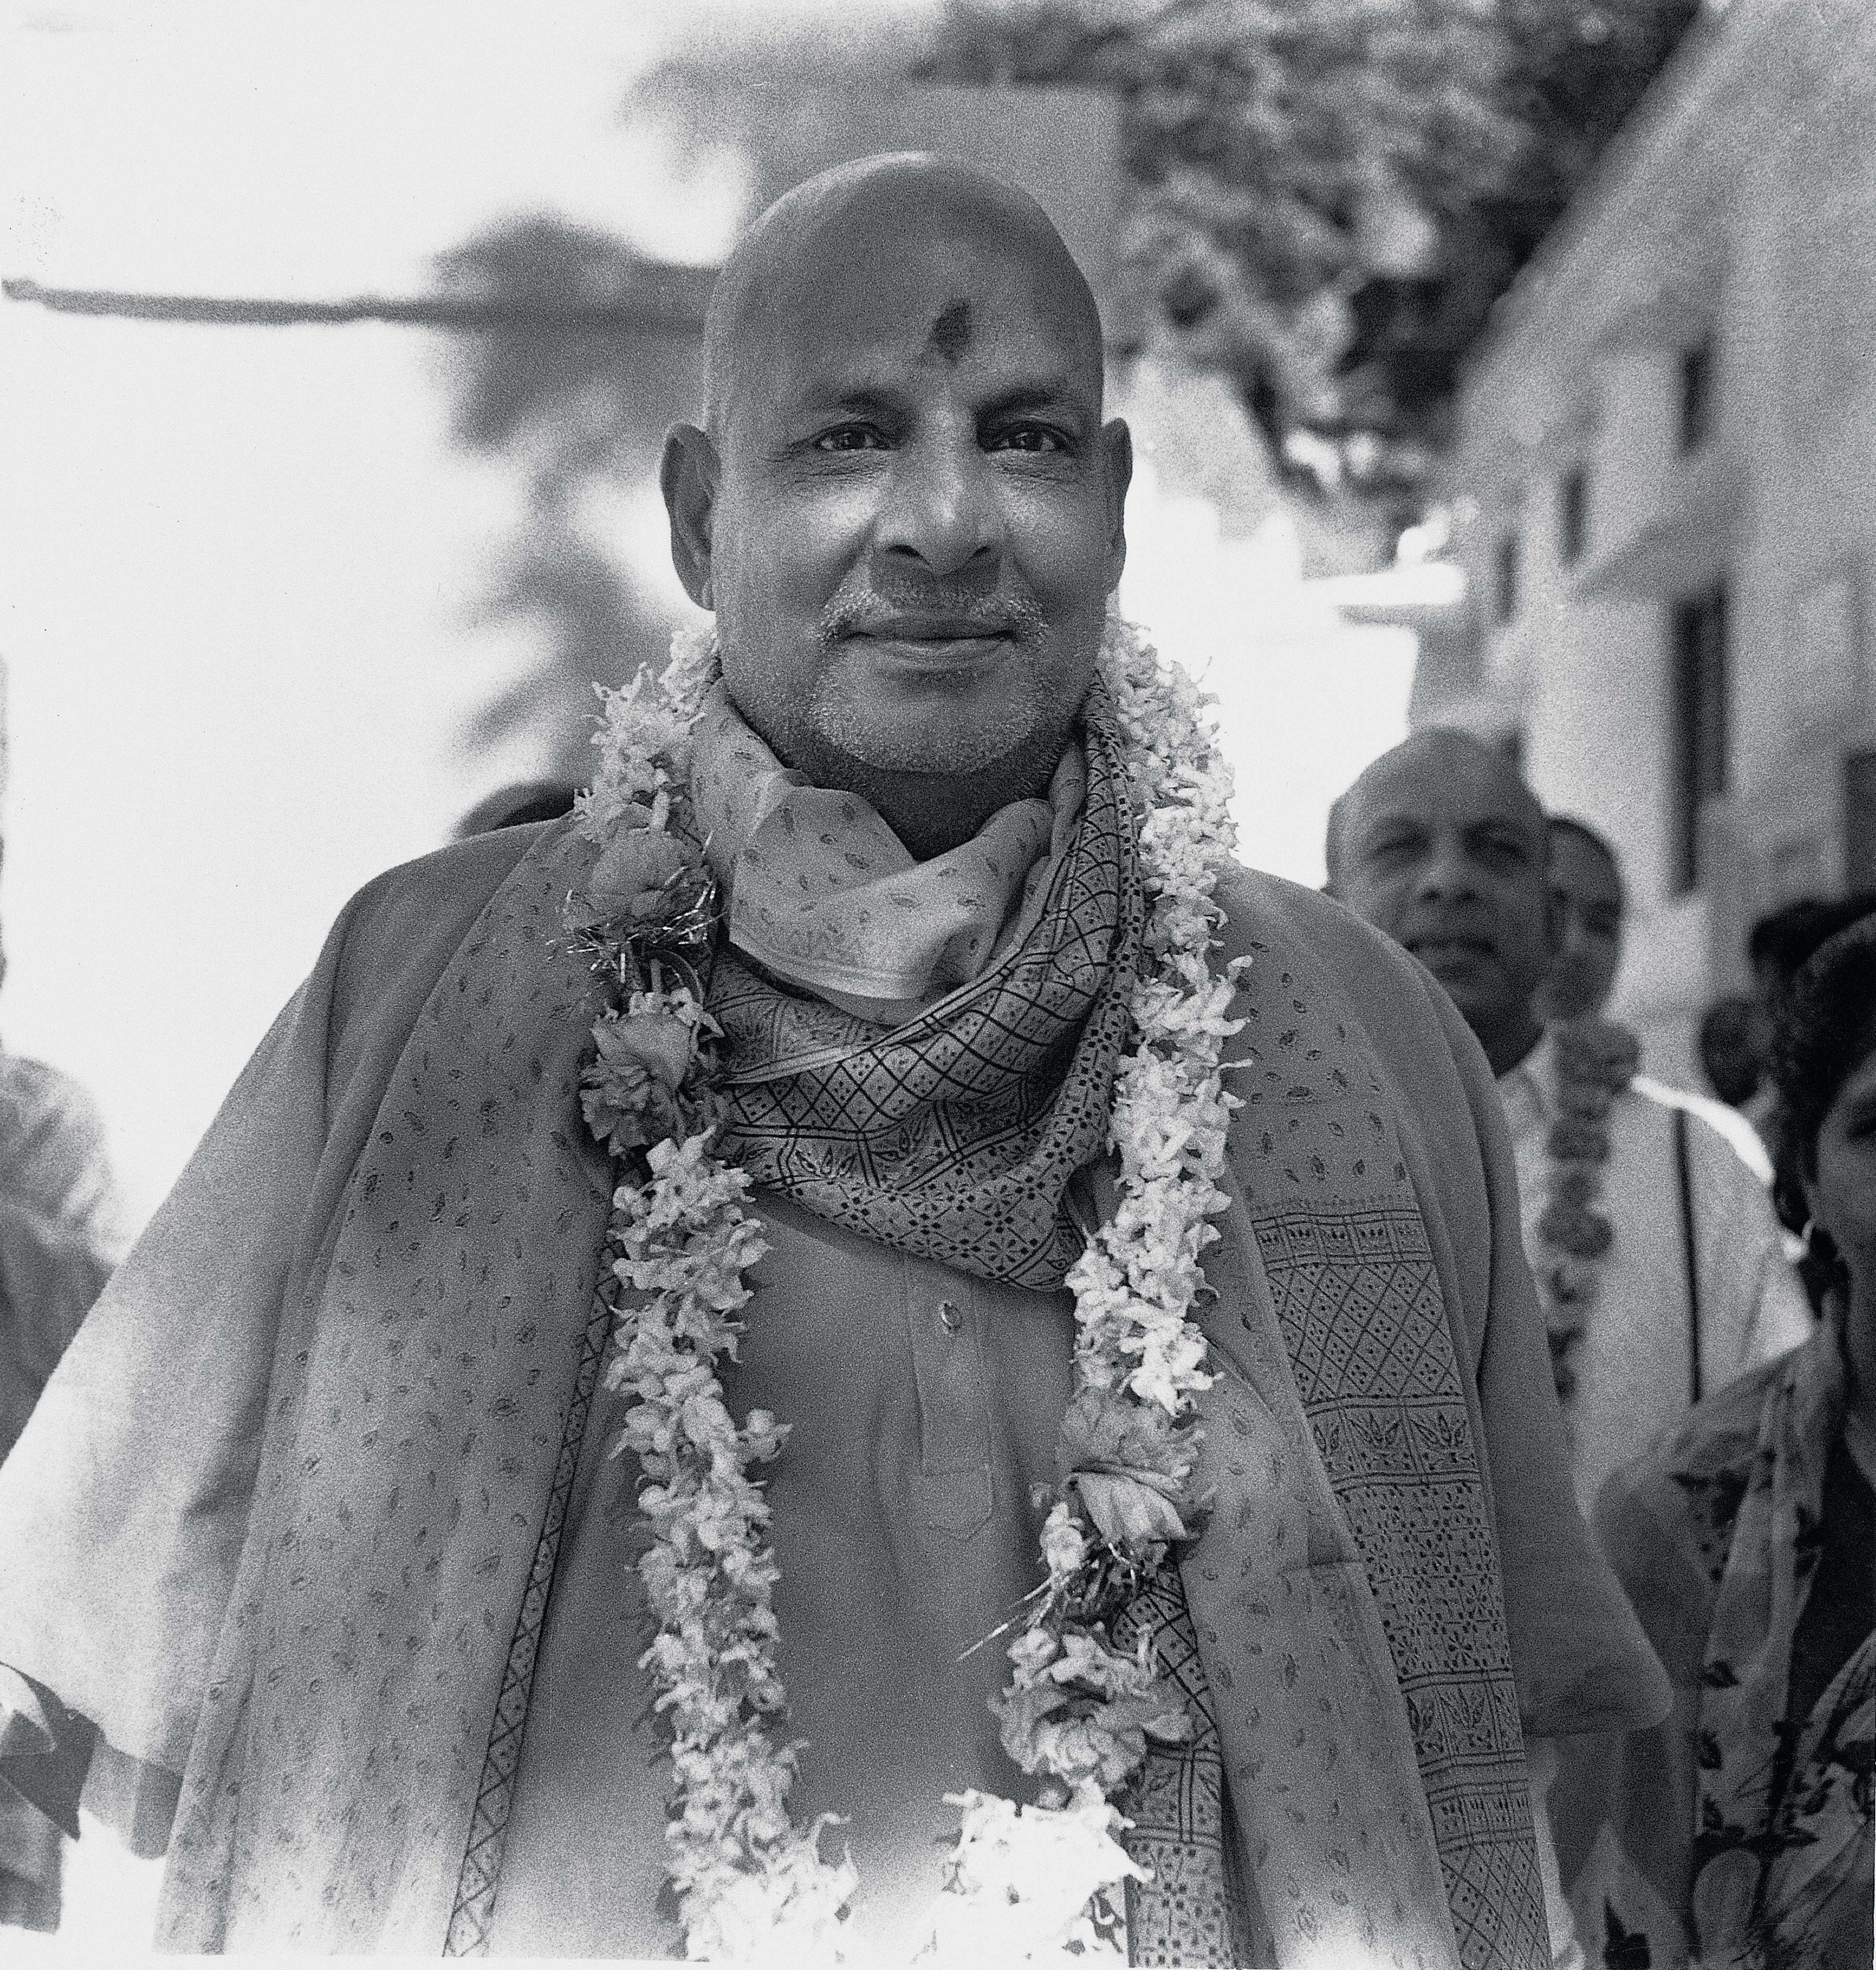 Quote by Swami Sivananda